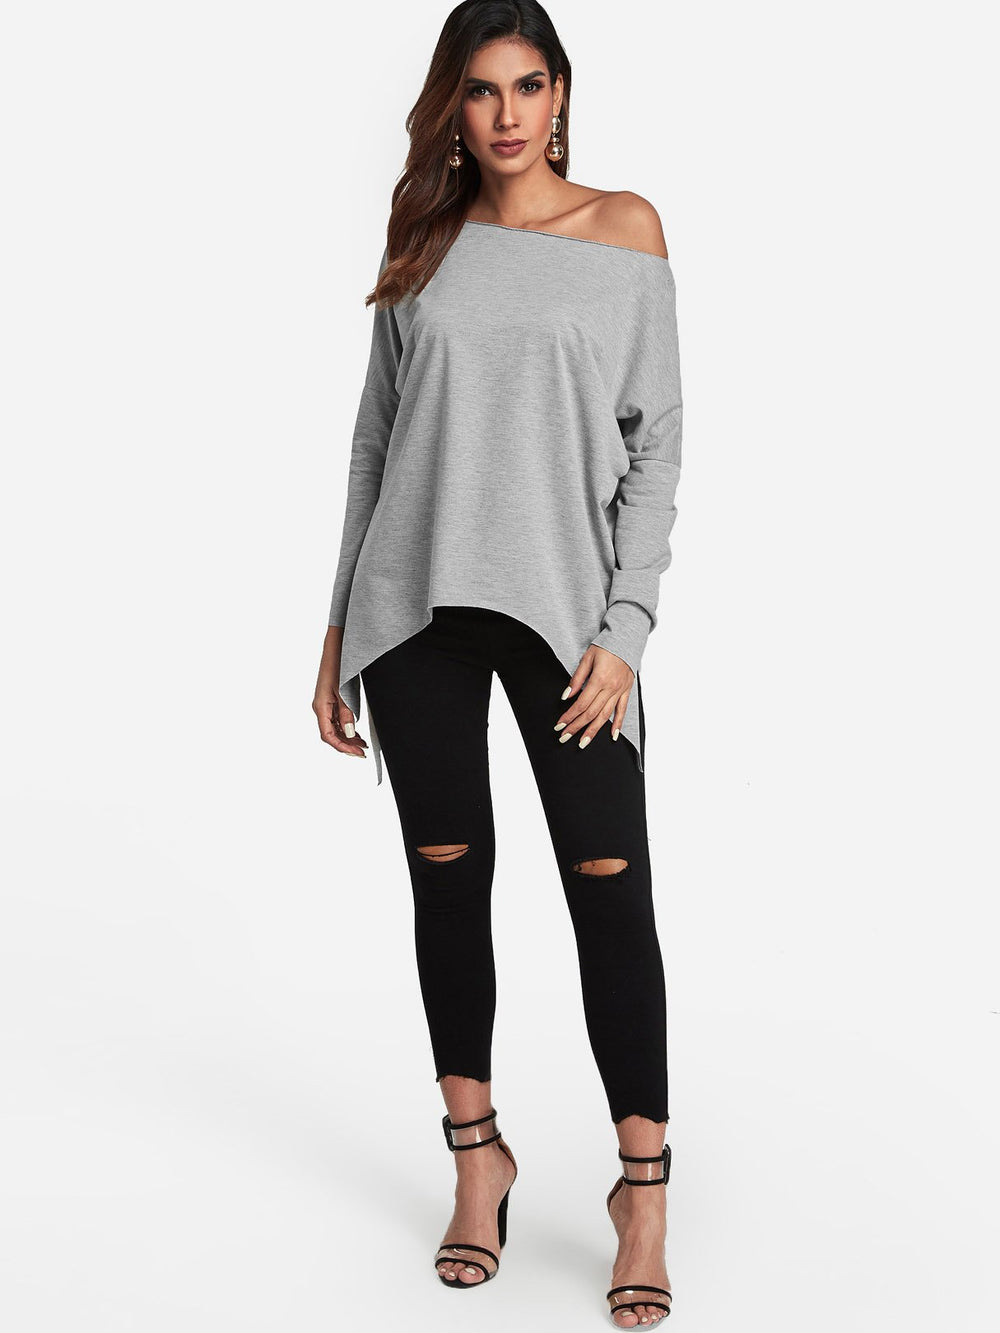 Women's Short Sleeve Knit Tops